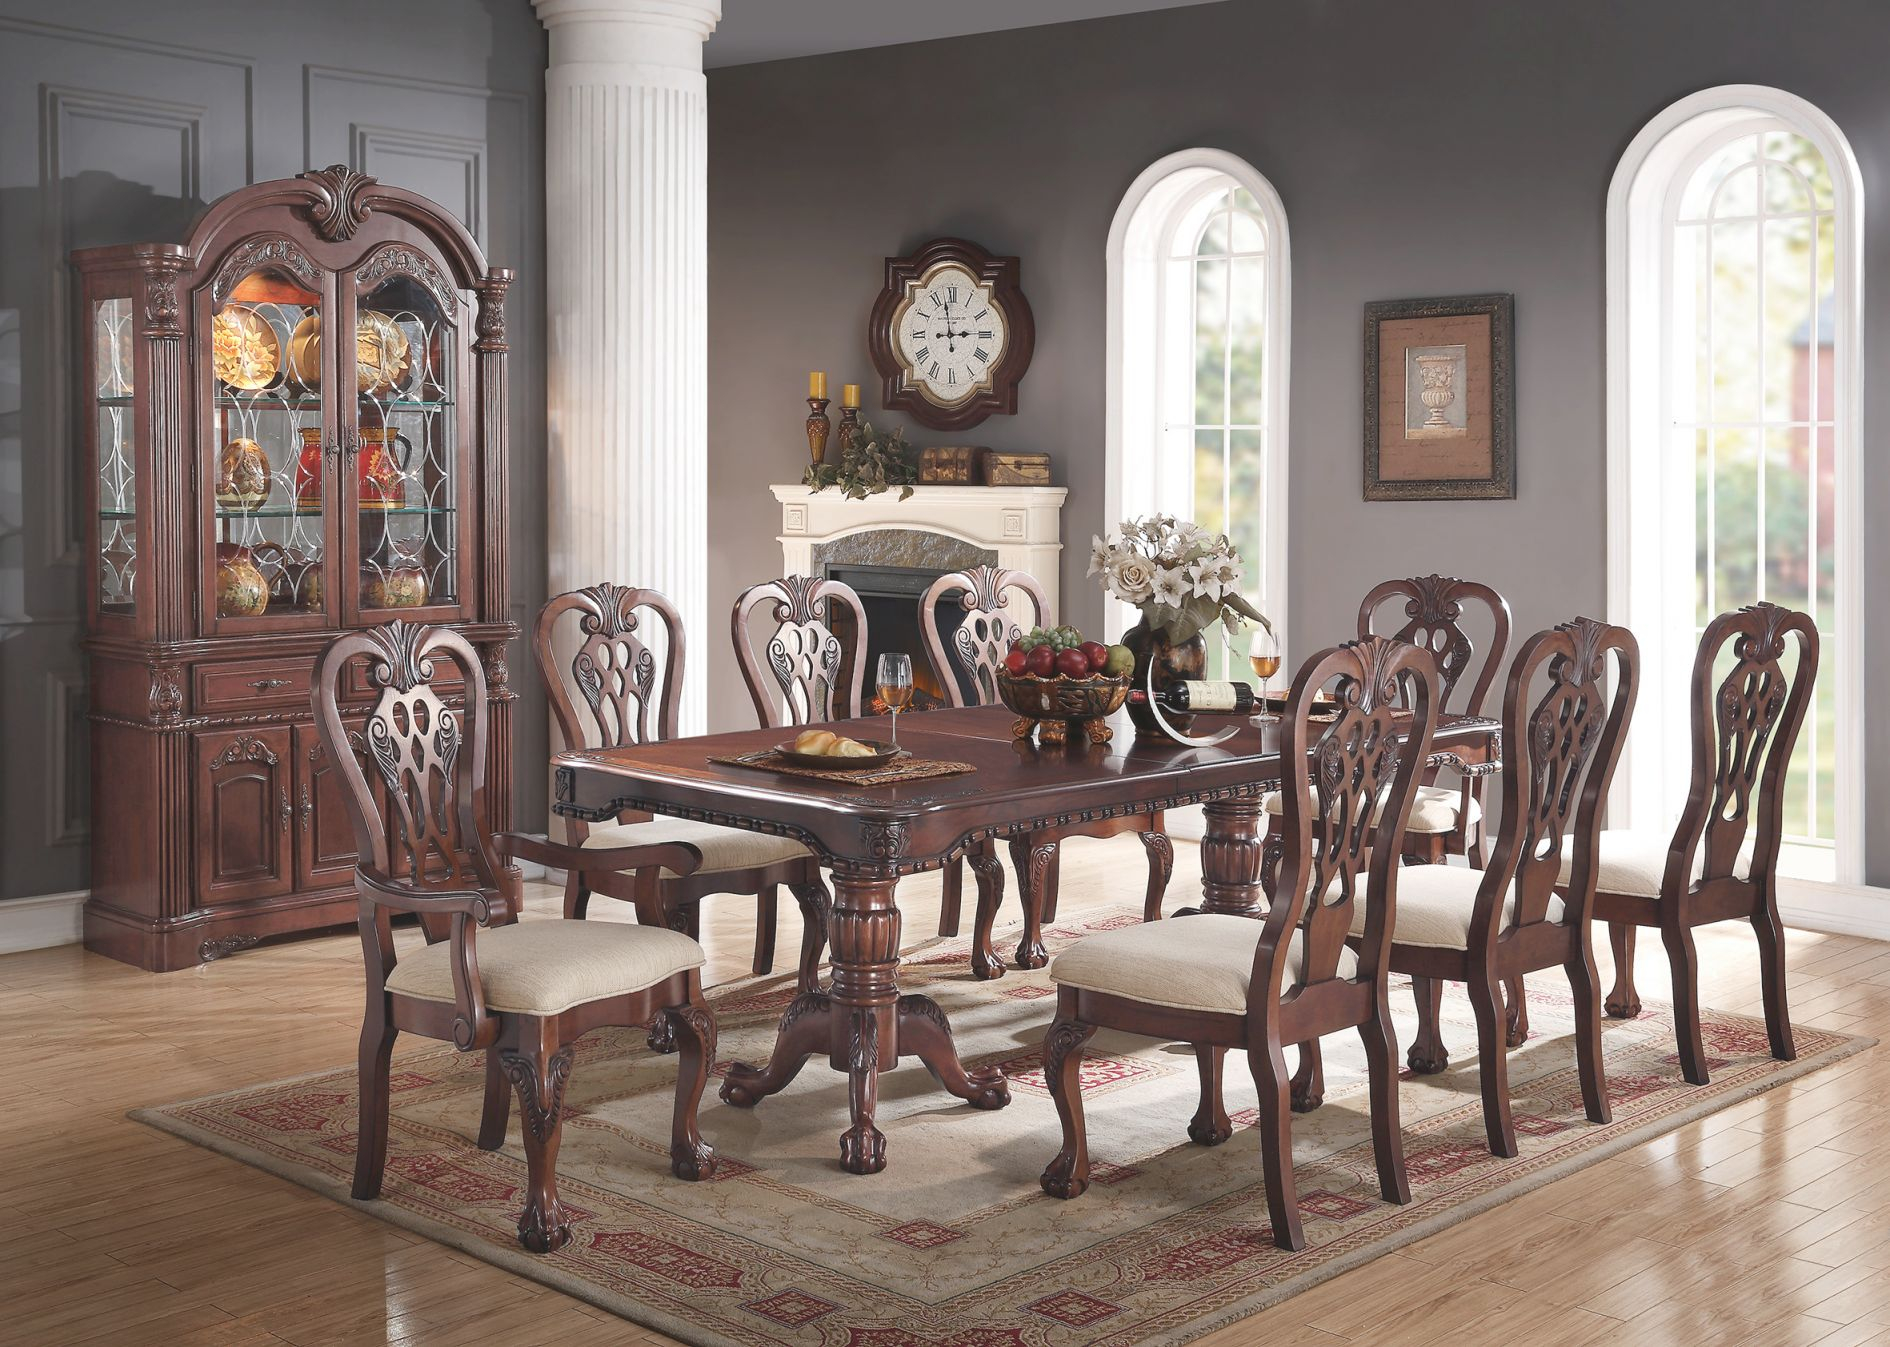 Formal Traditional Dining Room 9Pc Set Cherry Wood Finish Rectangle Dining Table Set Accent Floral Pattern Chairs Crream Cushion 6 Side Chairs & 2 Arm within Floral Living Room Furniture